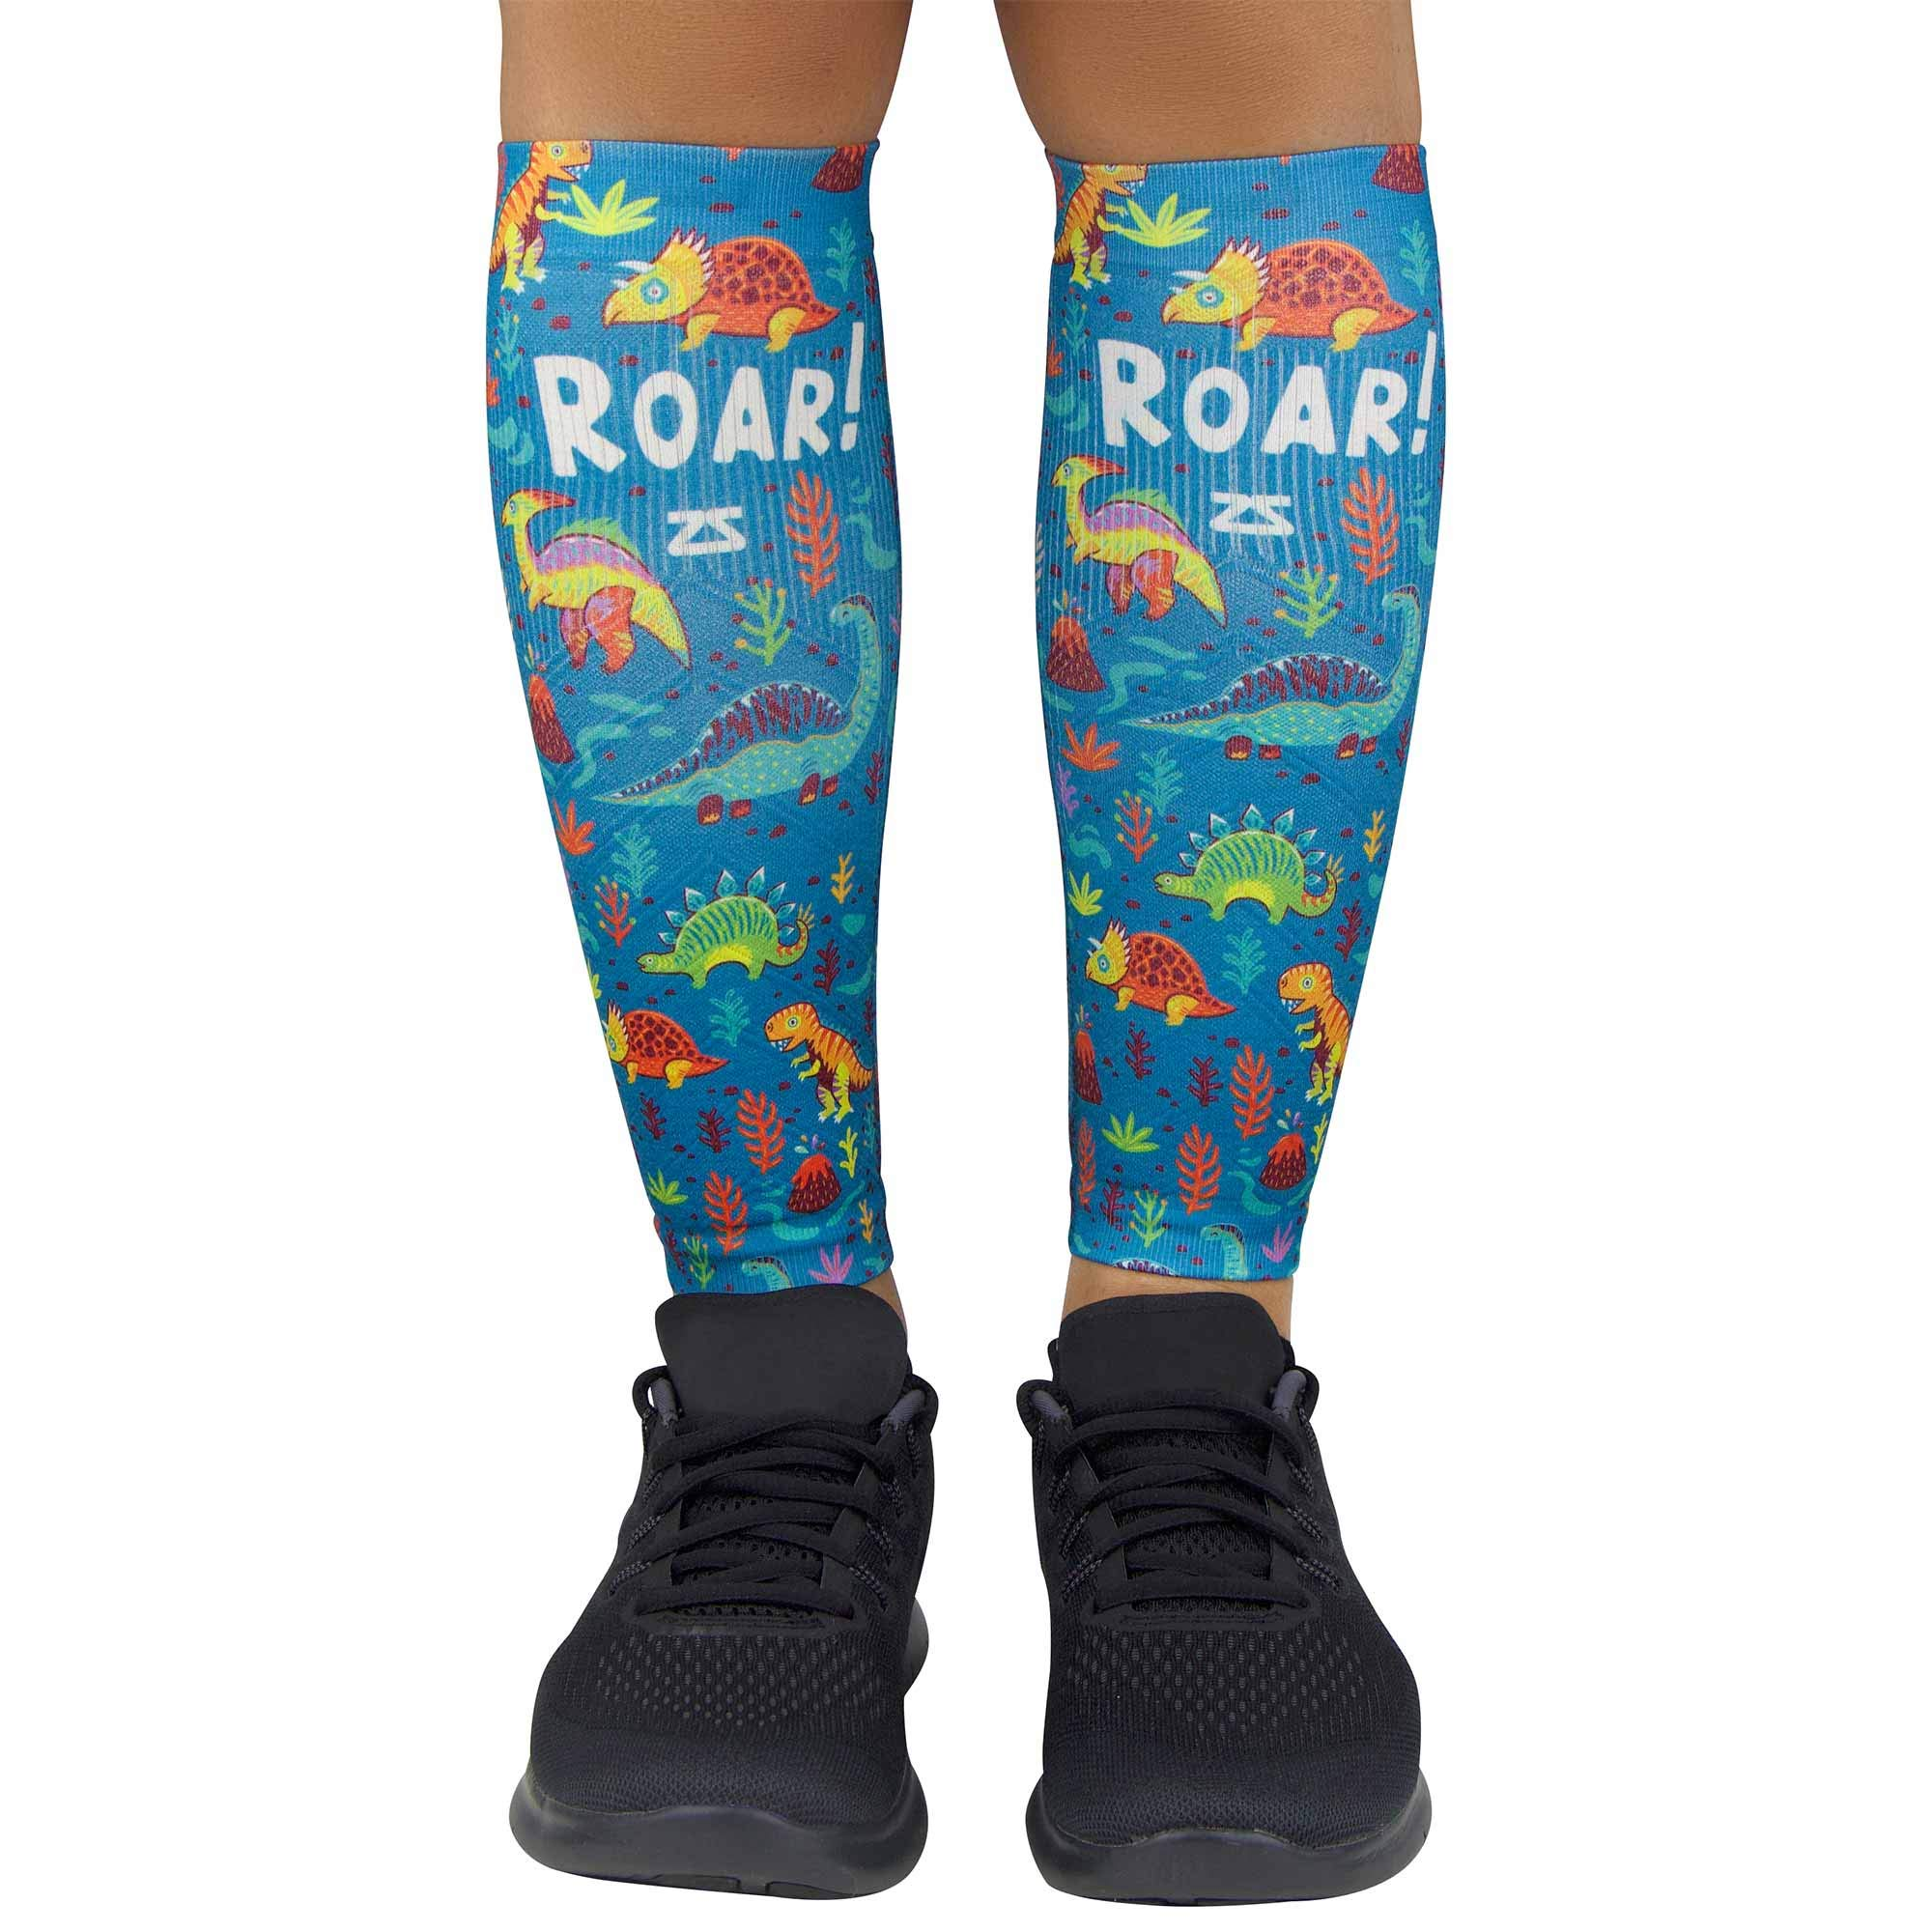 Zensah Compression Leg Sleeves – Helps Shin Splints, Leg Sleeves for Running (X-Small/Small, Dinosaurs-Teal)